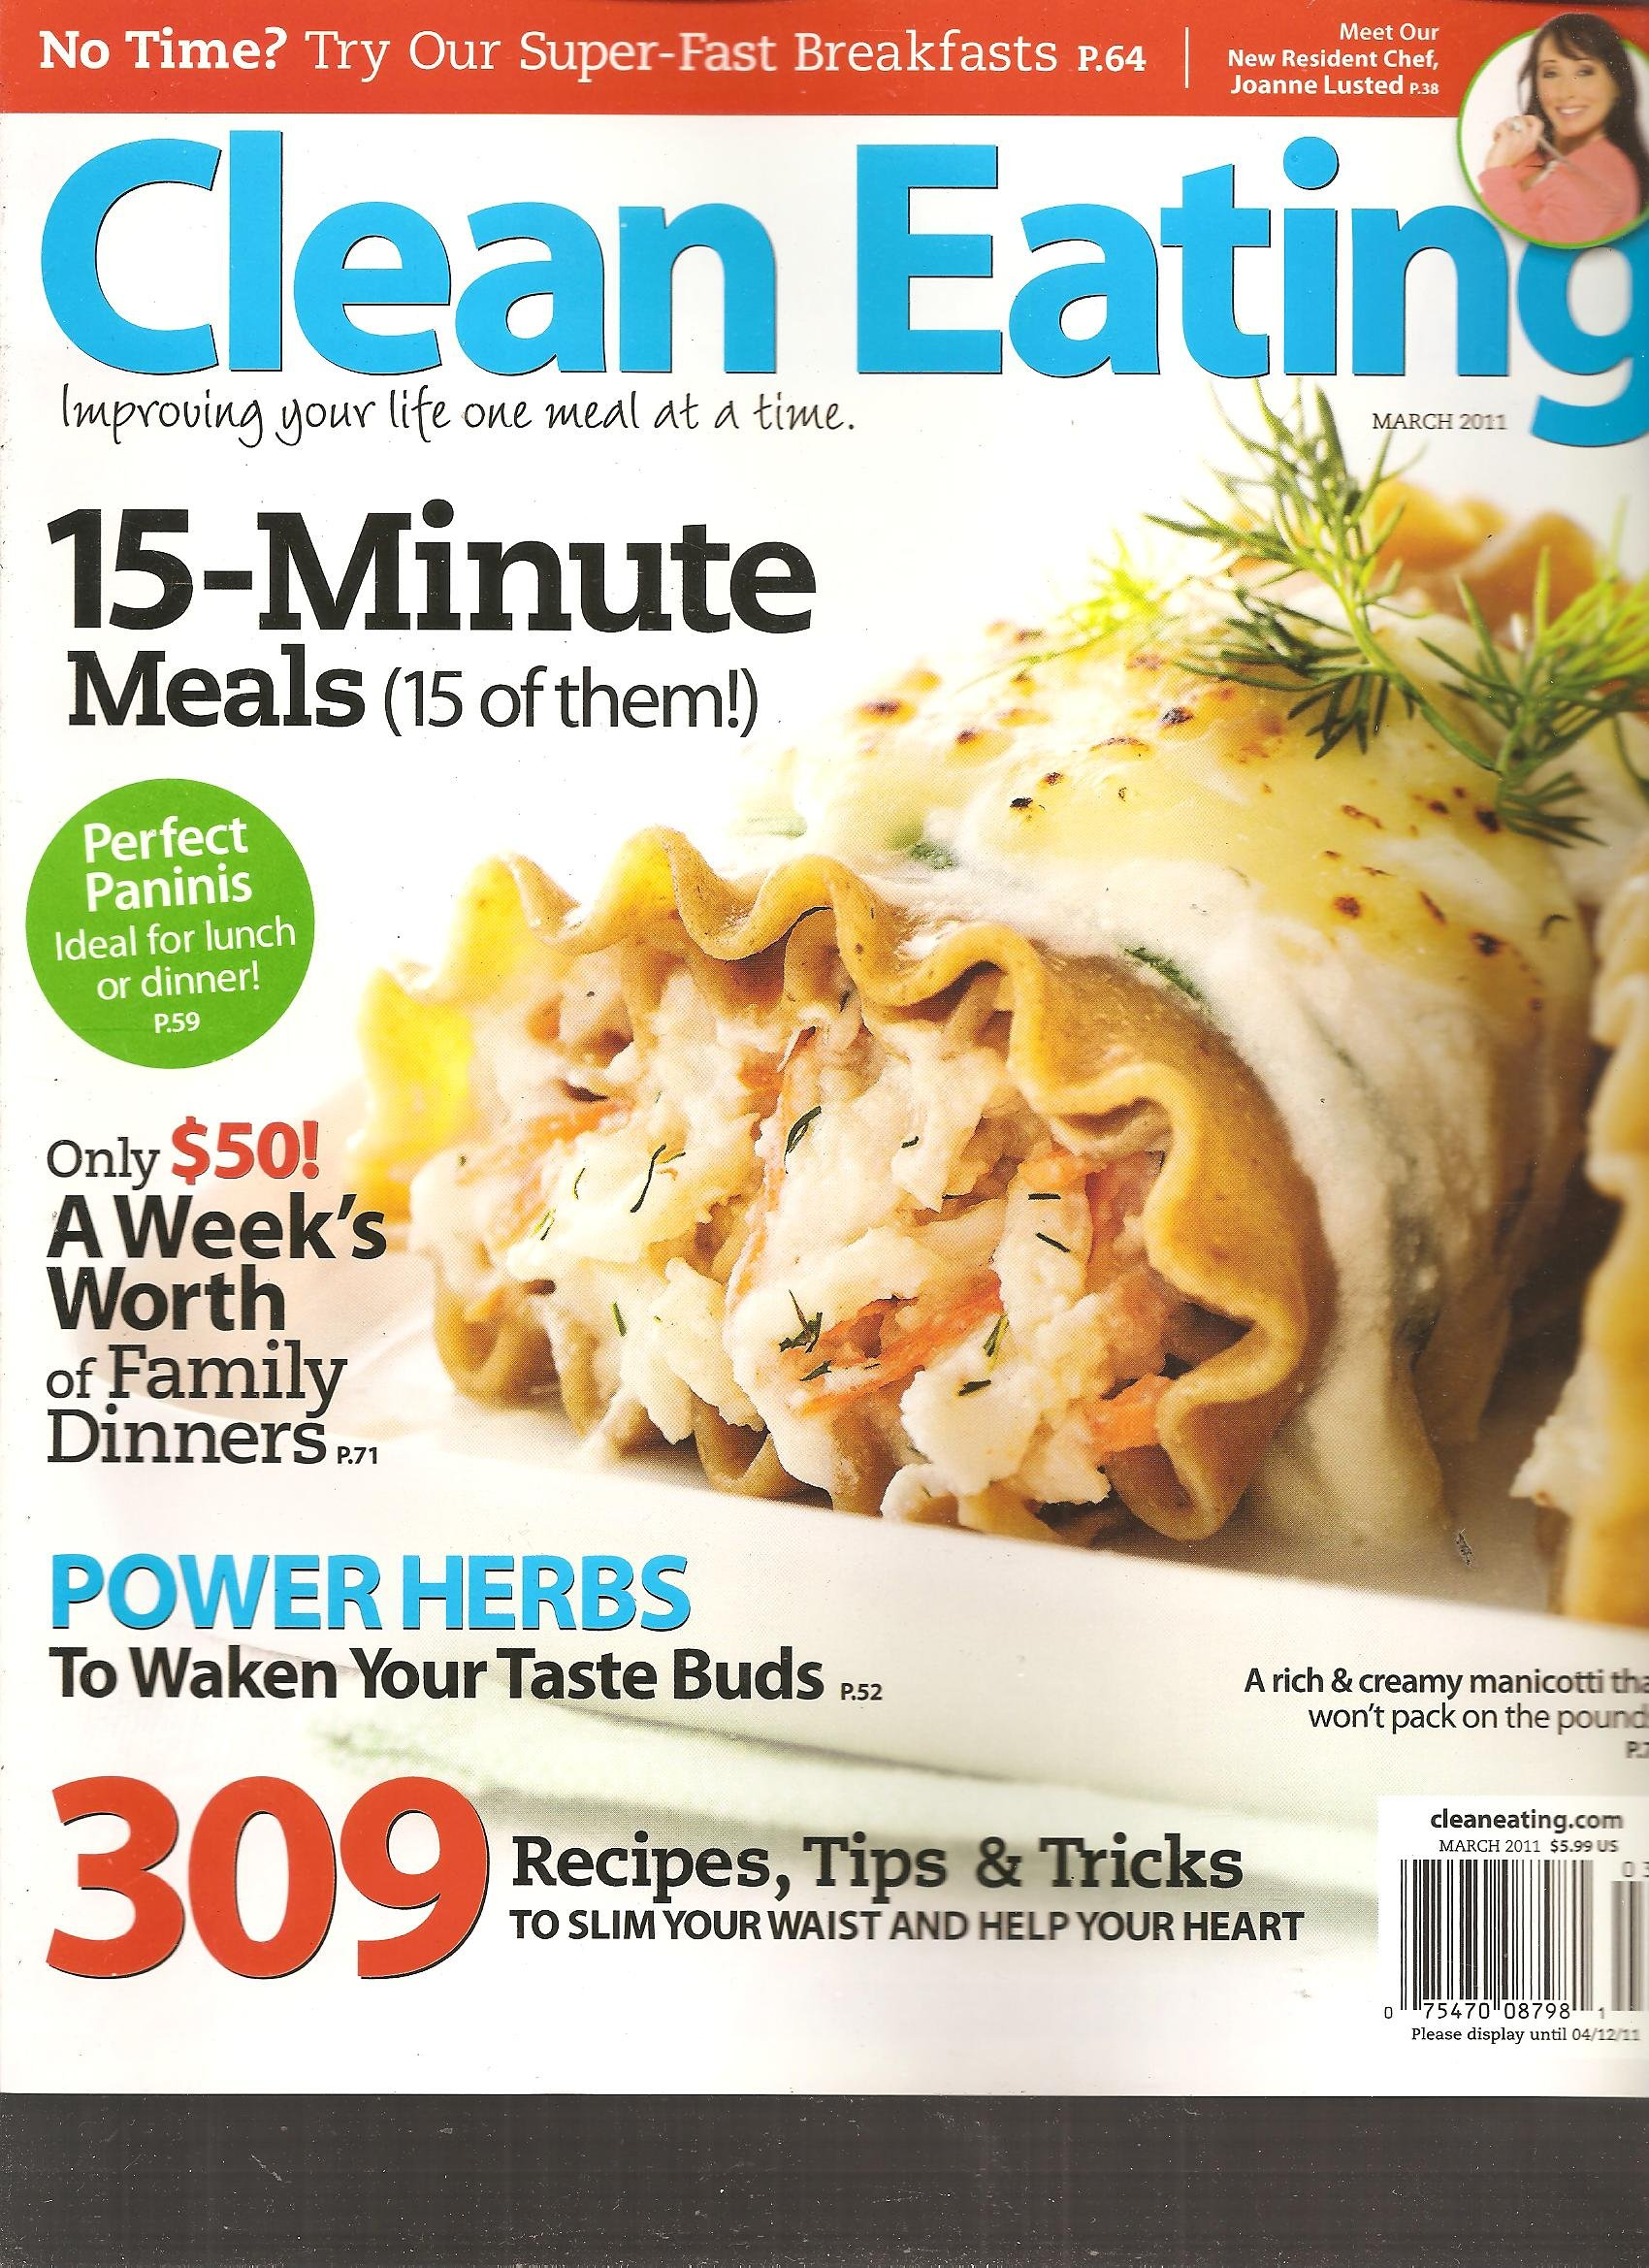 Clean Eating Magazine (15 Minute meals, March 2011) ebook